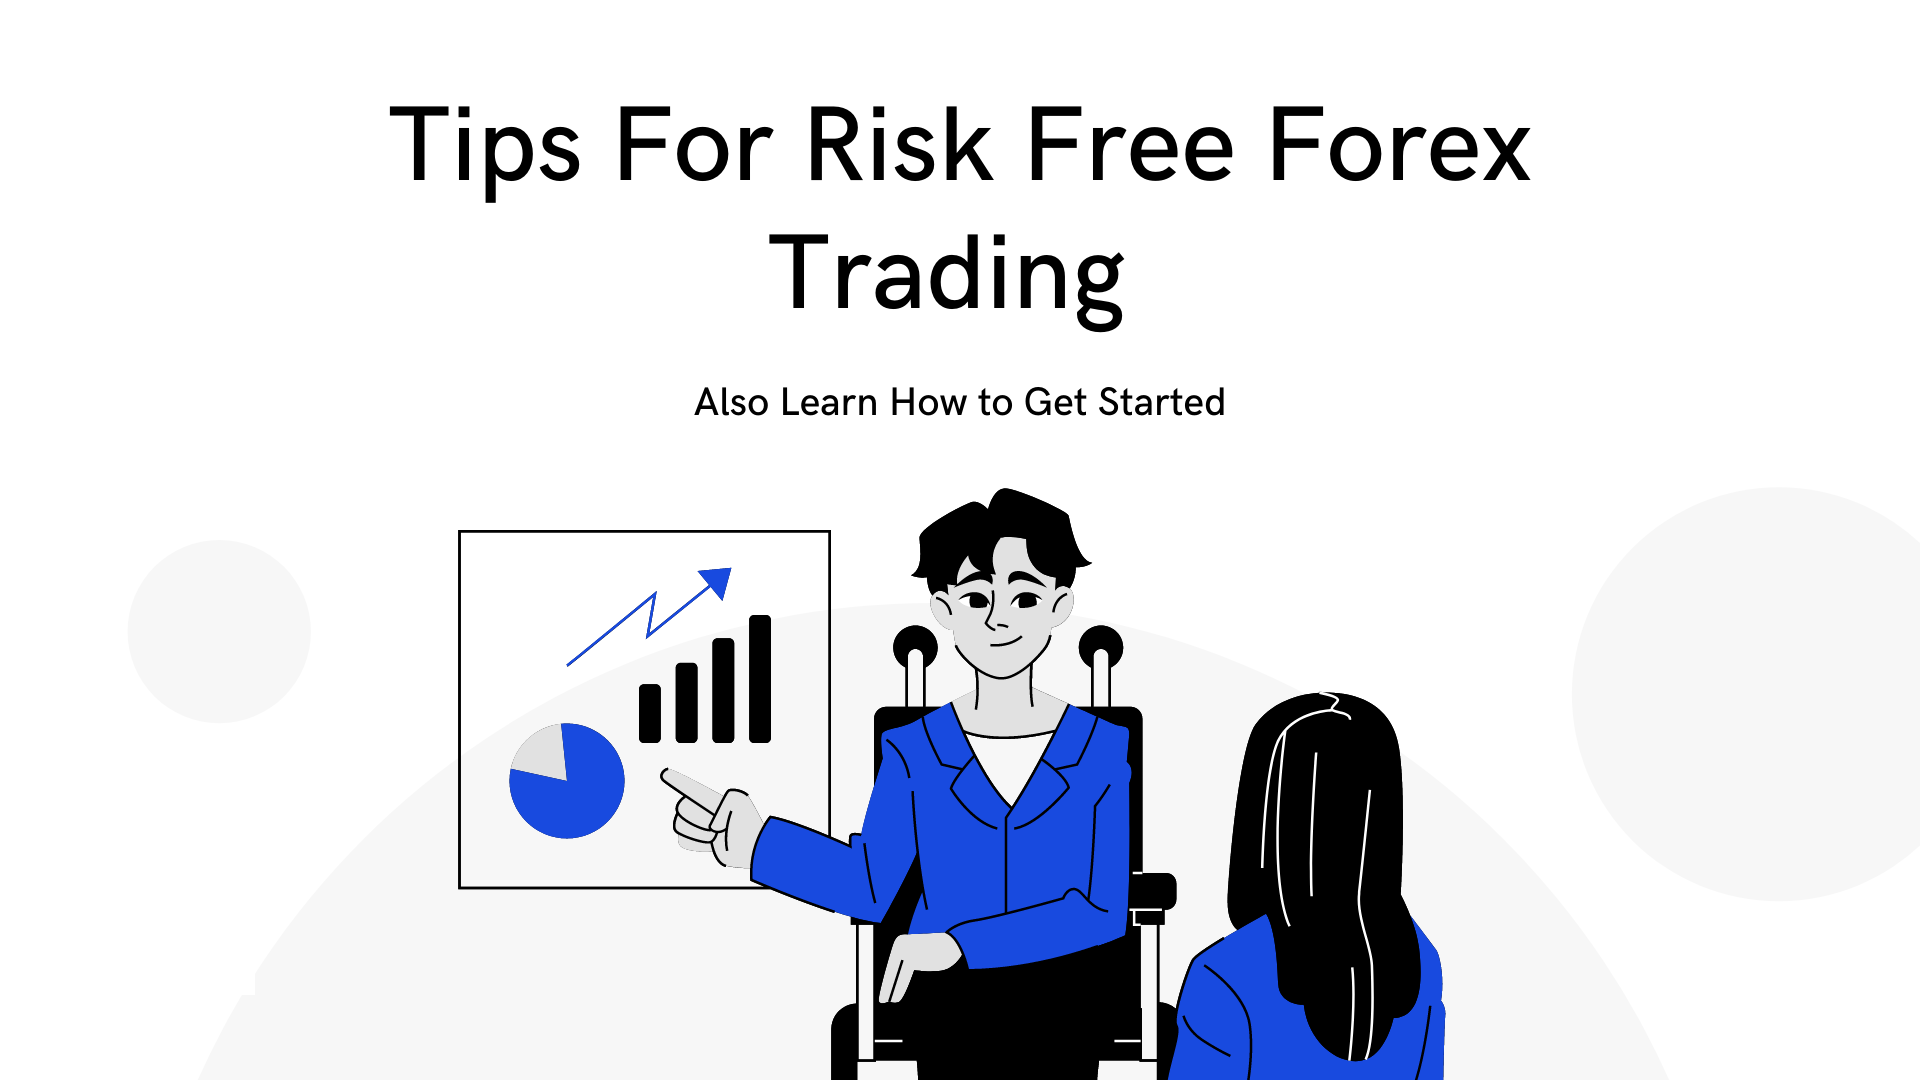 Risk Free Forex Trading